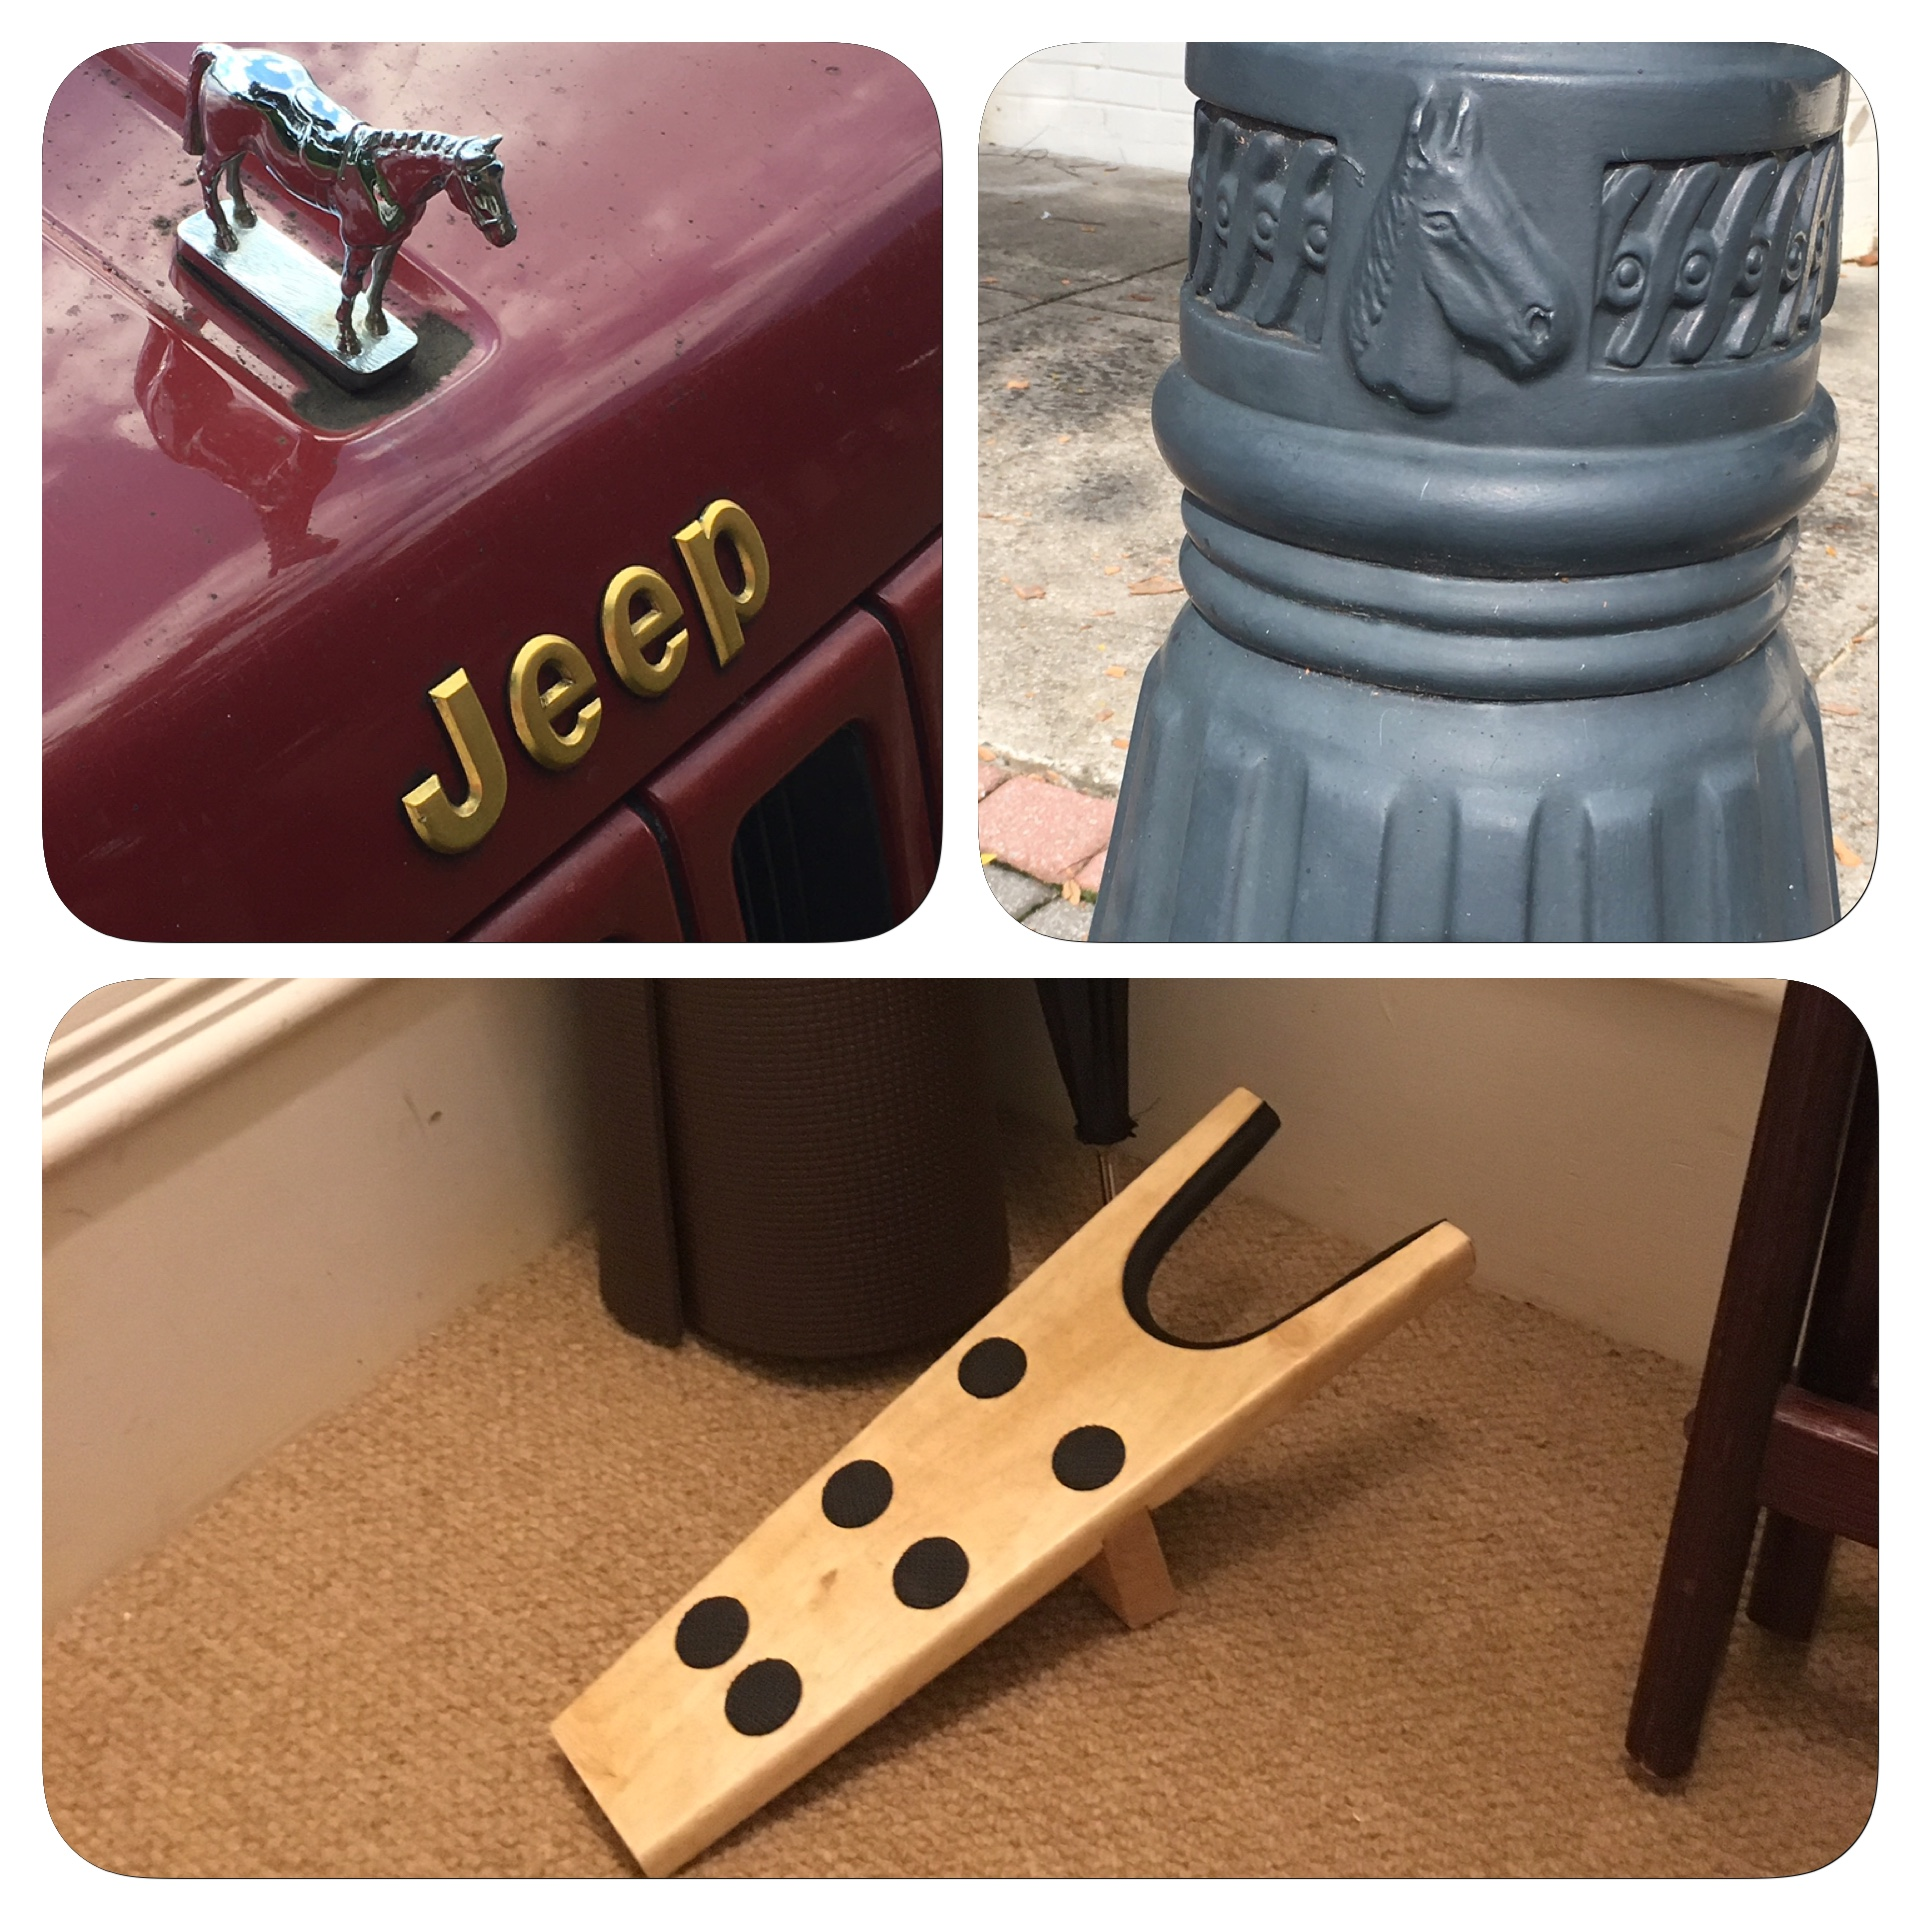 You know you are in an equestrian town when there is a boot jack in your closet. It even looks like a horse.